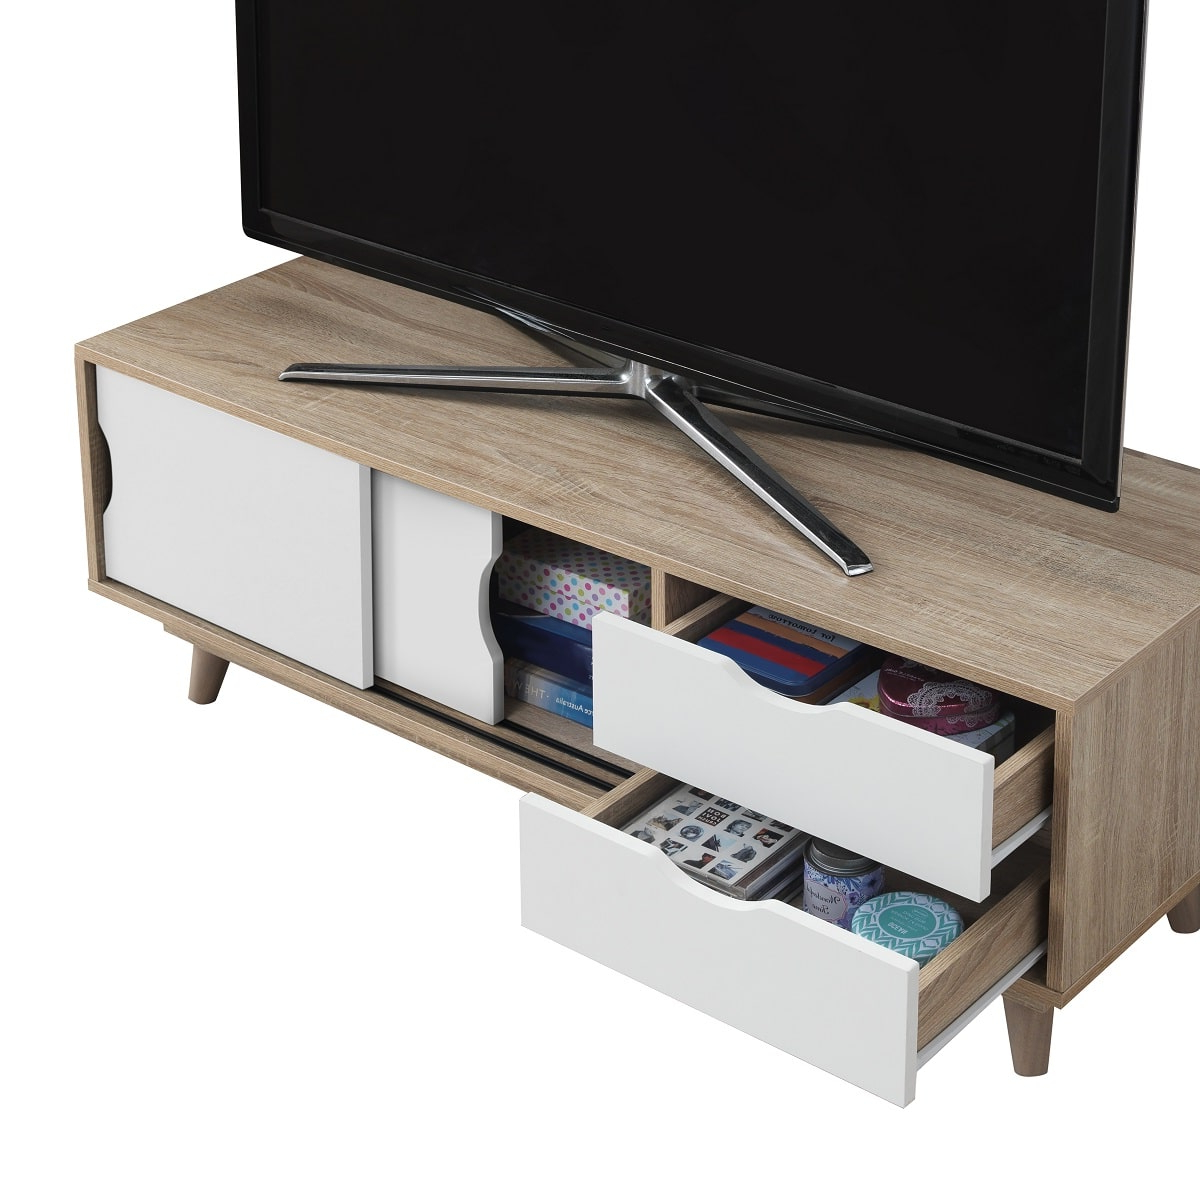 Alford Scandinavian Tv Unit Sonoma Oak & White – Y1 Furniture Throughout Emmett Sonoma Tv Stands With Coffee Table With Metal Frame (View 14 of 20)